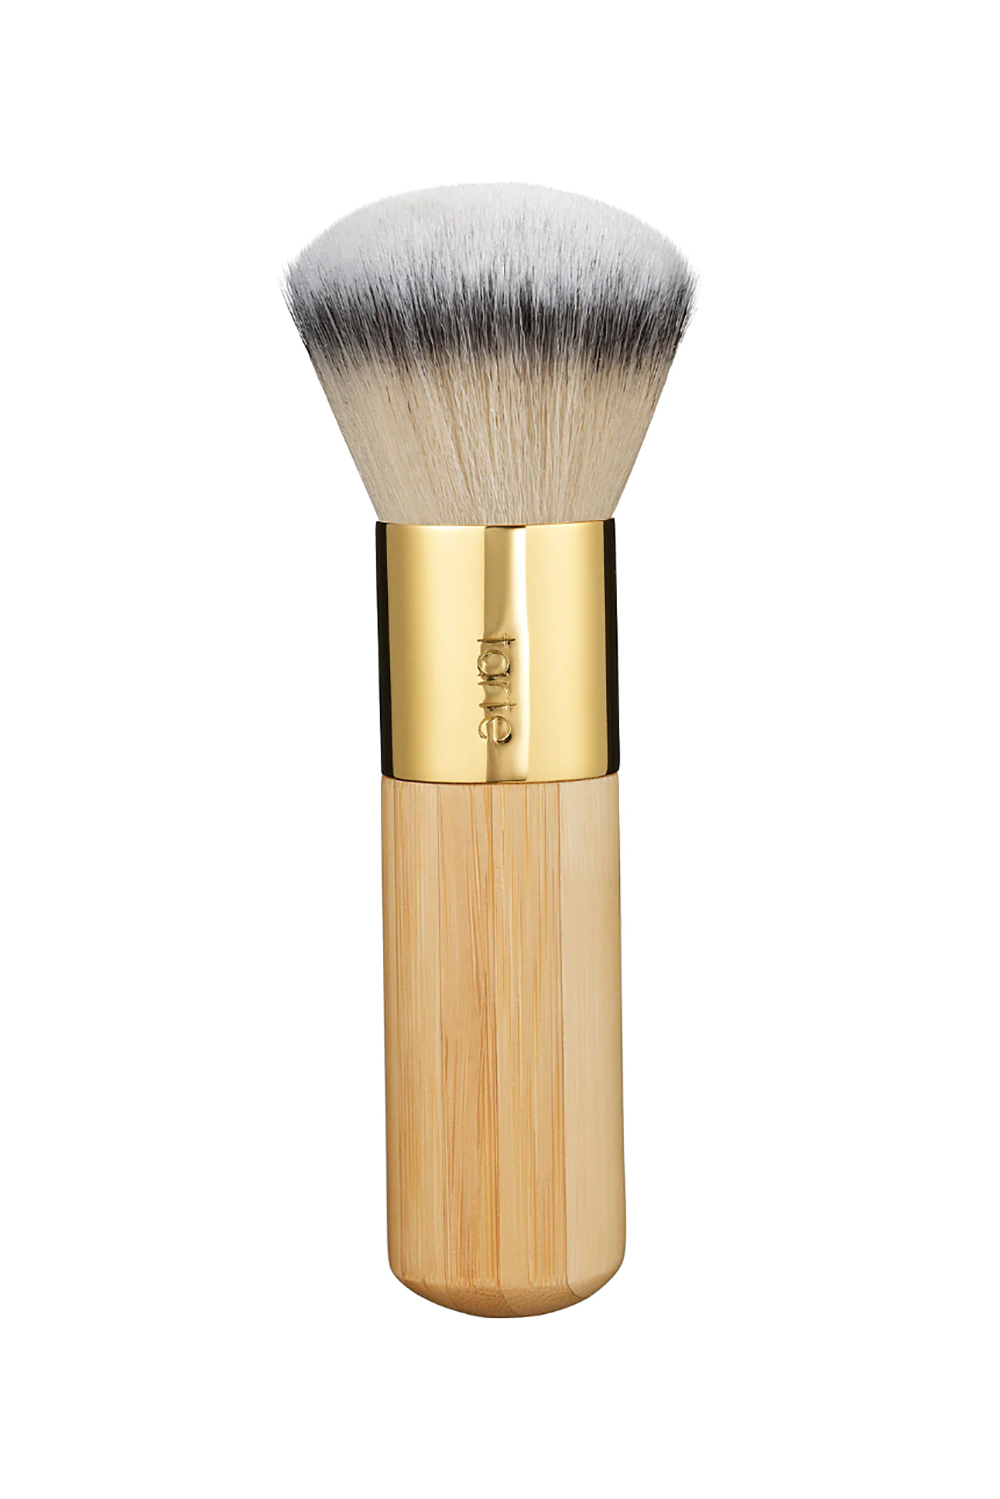 The 16 Best Foundation Brushes Of 2021